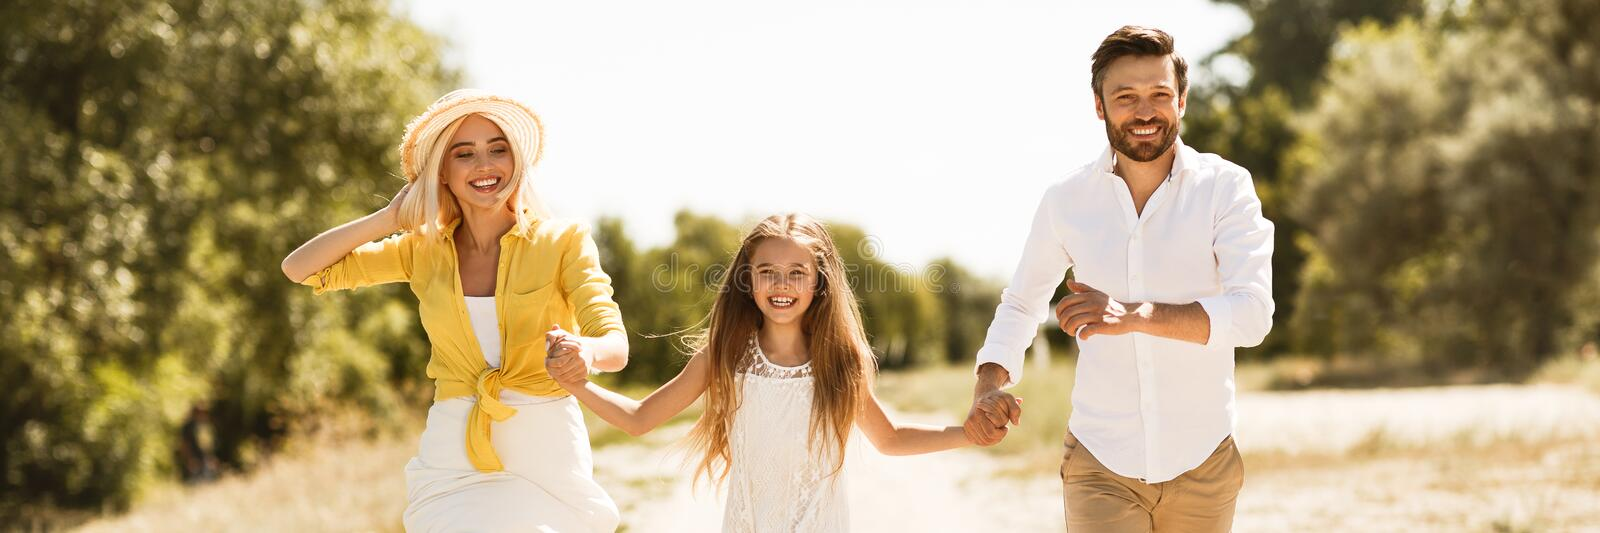 Happy family running together in countryside, panorama royalty free stock image